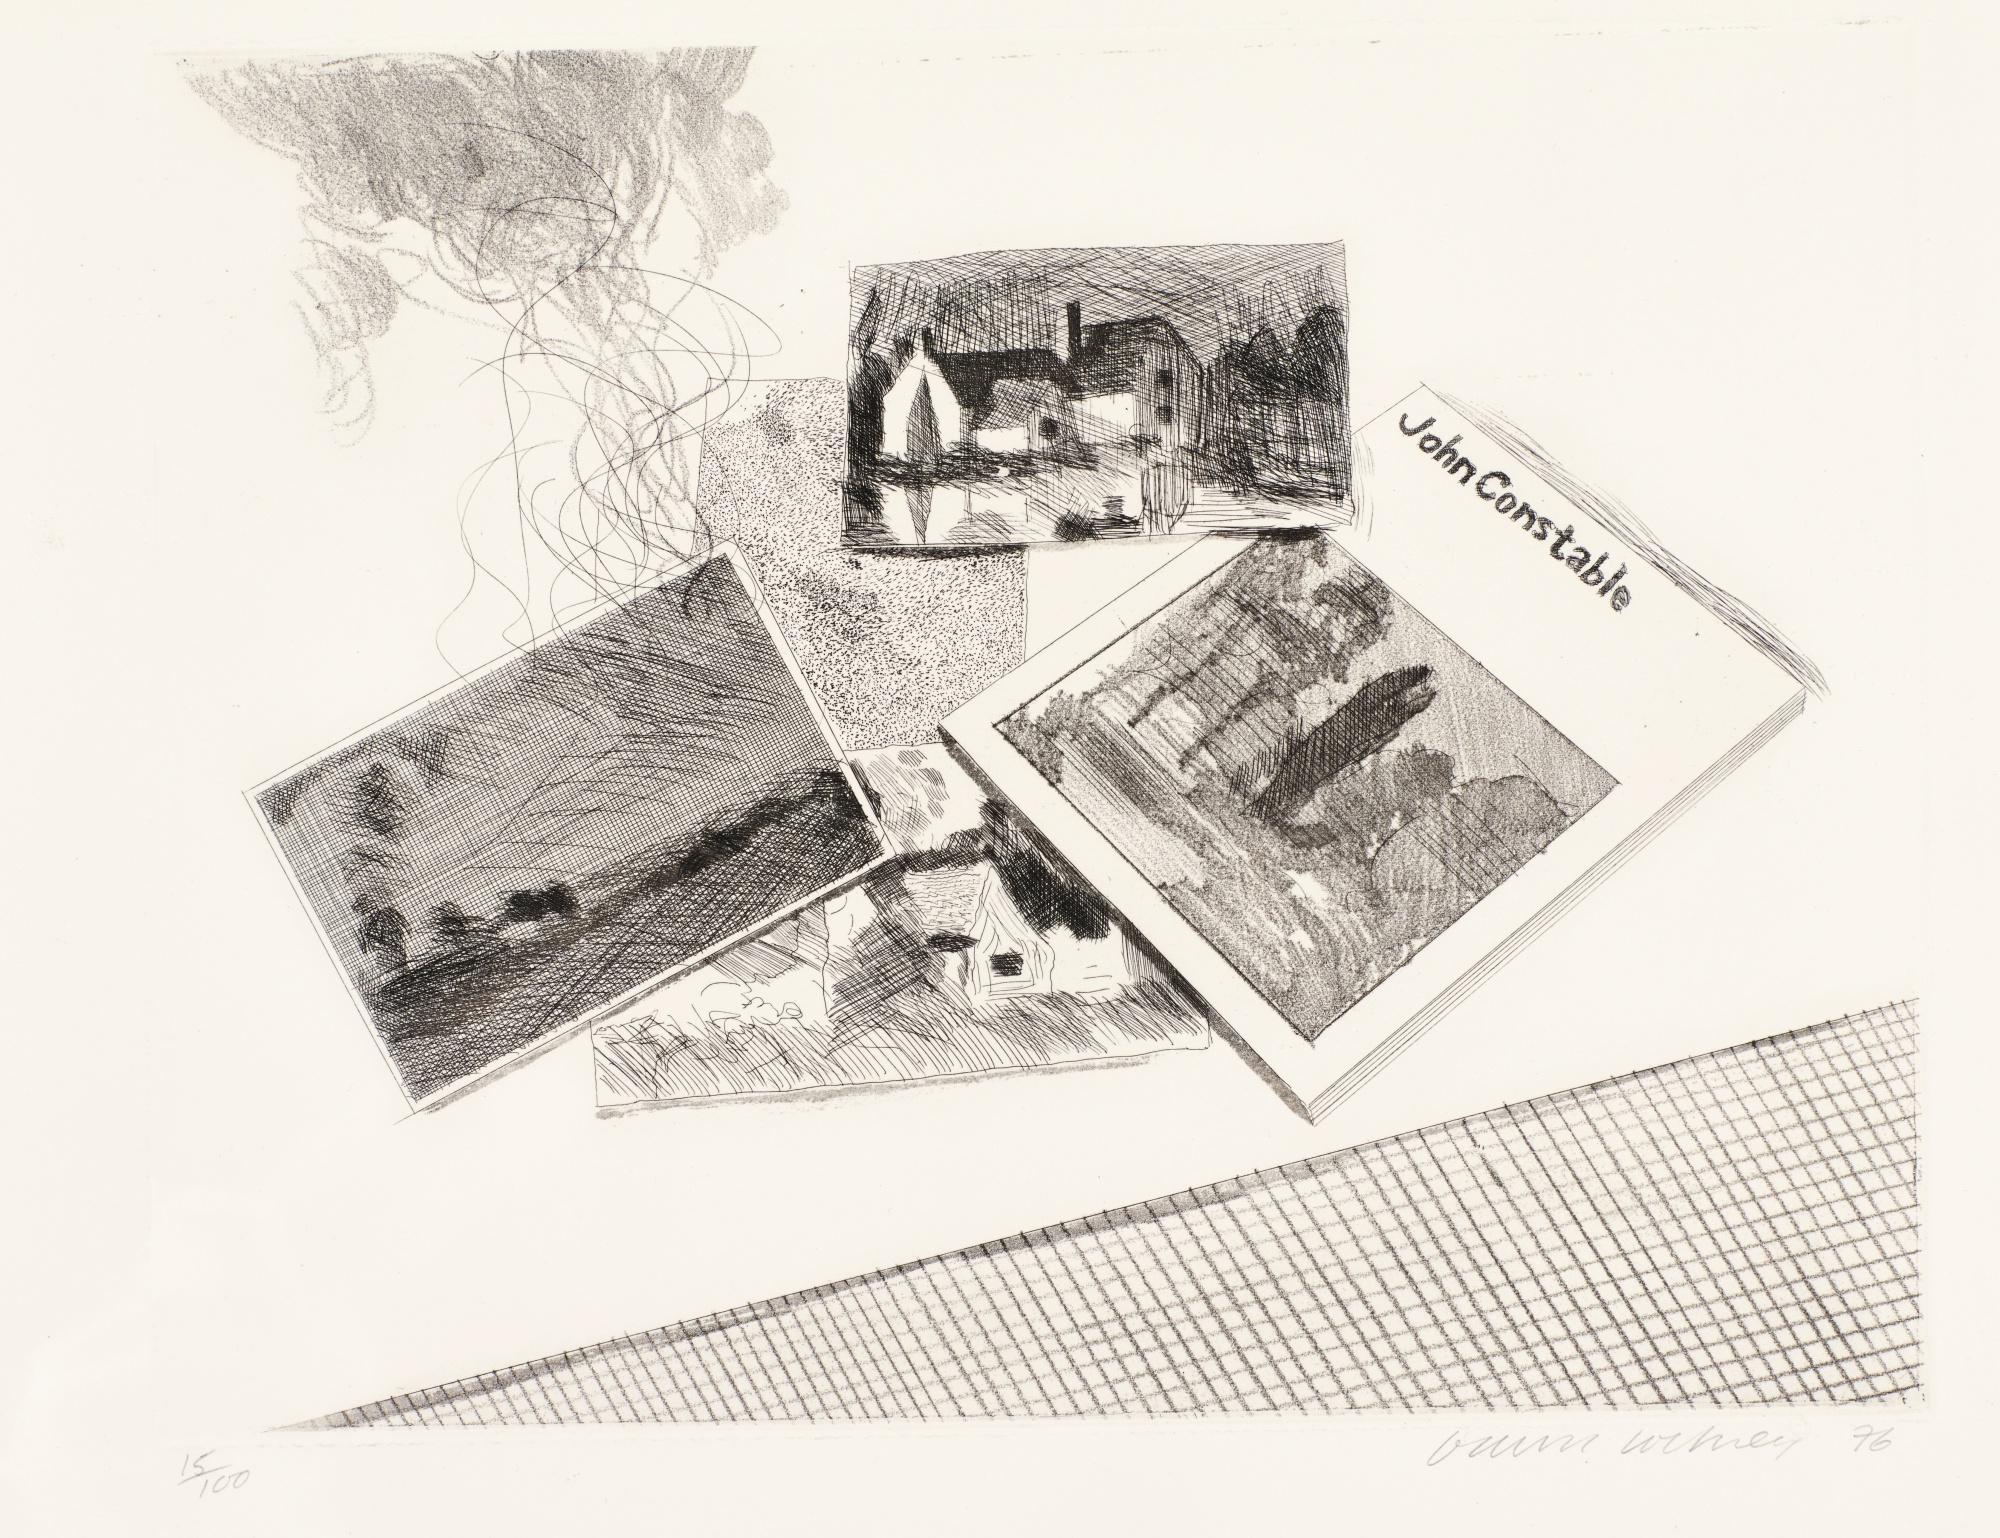 David Hockney-For John Constable (S.A.C. 189; Mca Tokyo 175)-1976